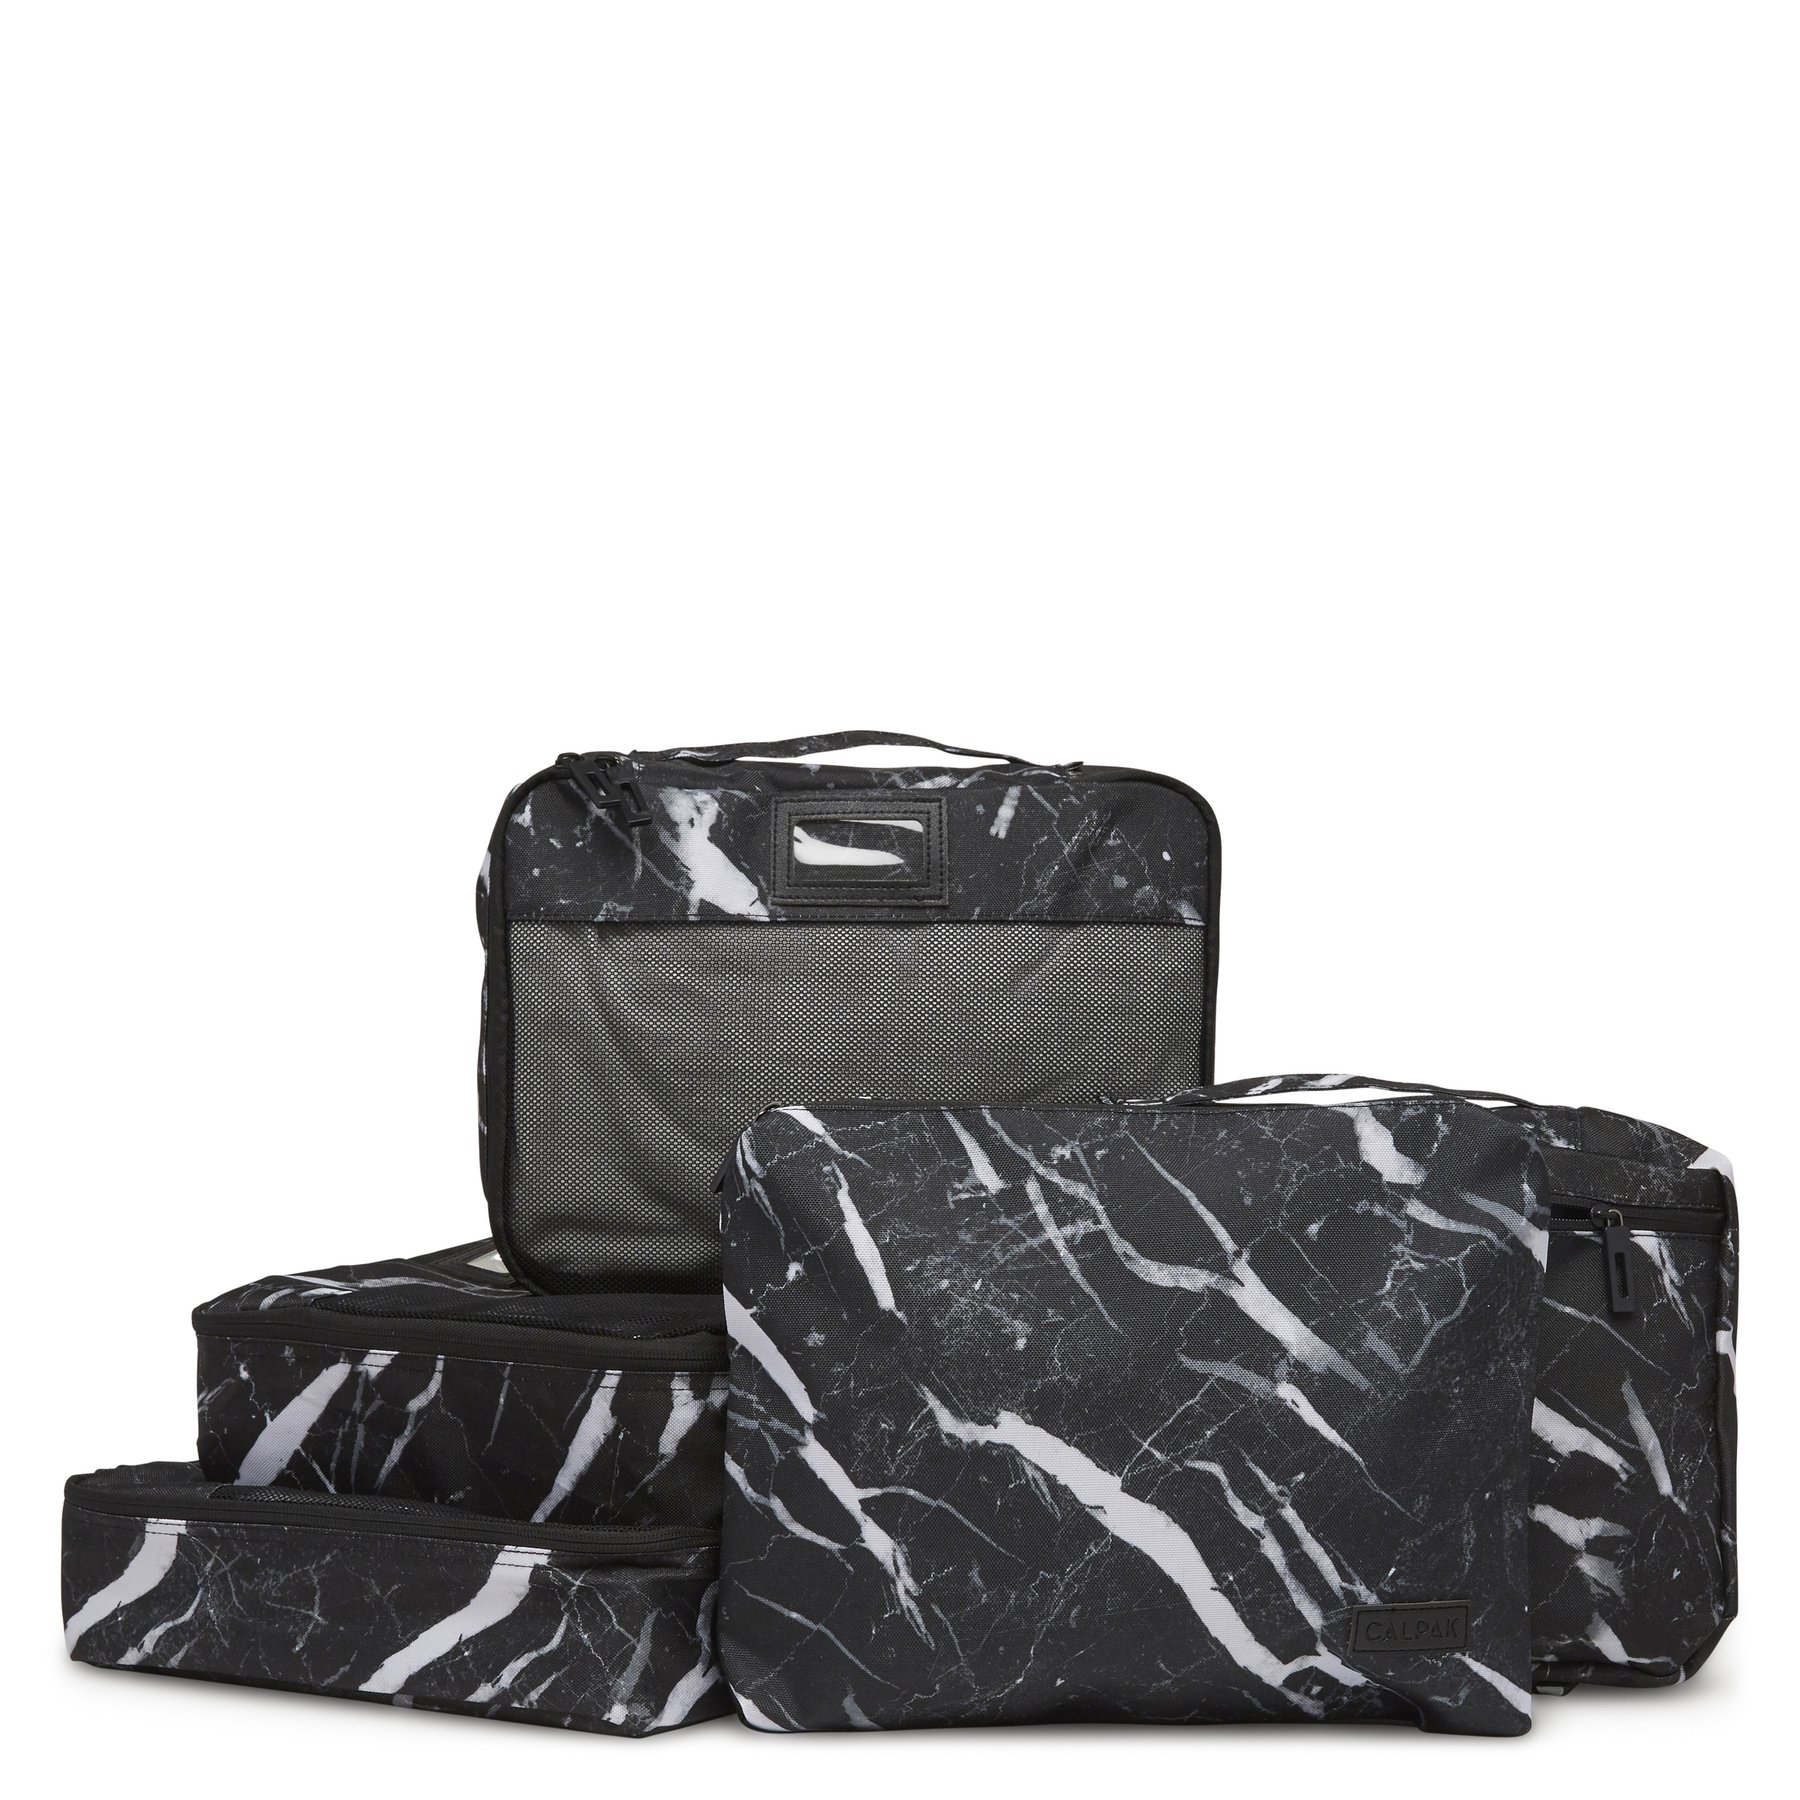 Packing Cubes - Midnight Marble  - $48